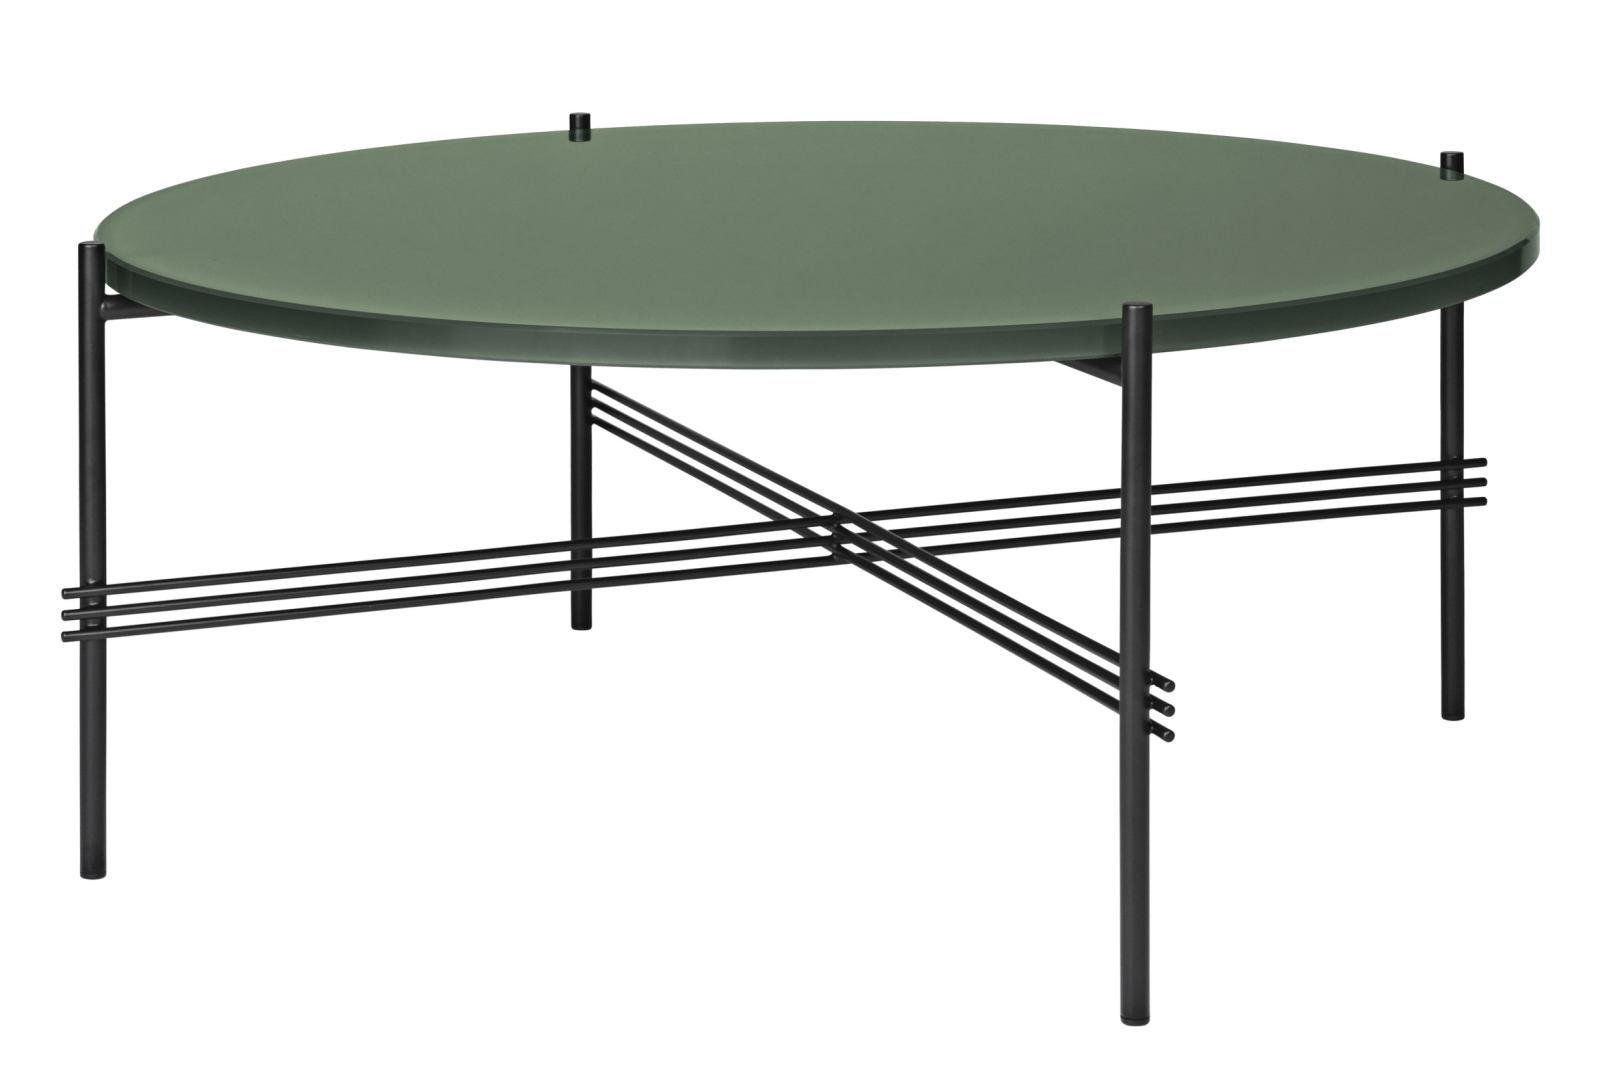 TS Round Coffee Table with Glass Top - Black Frame Dusty Green Top and Black Frame, 0 80 x 35 cm